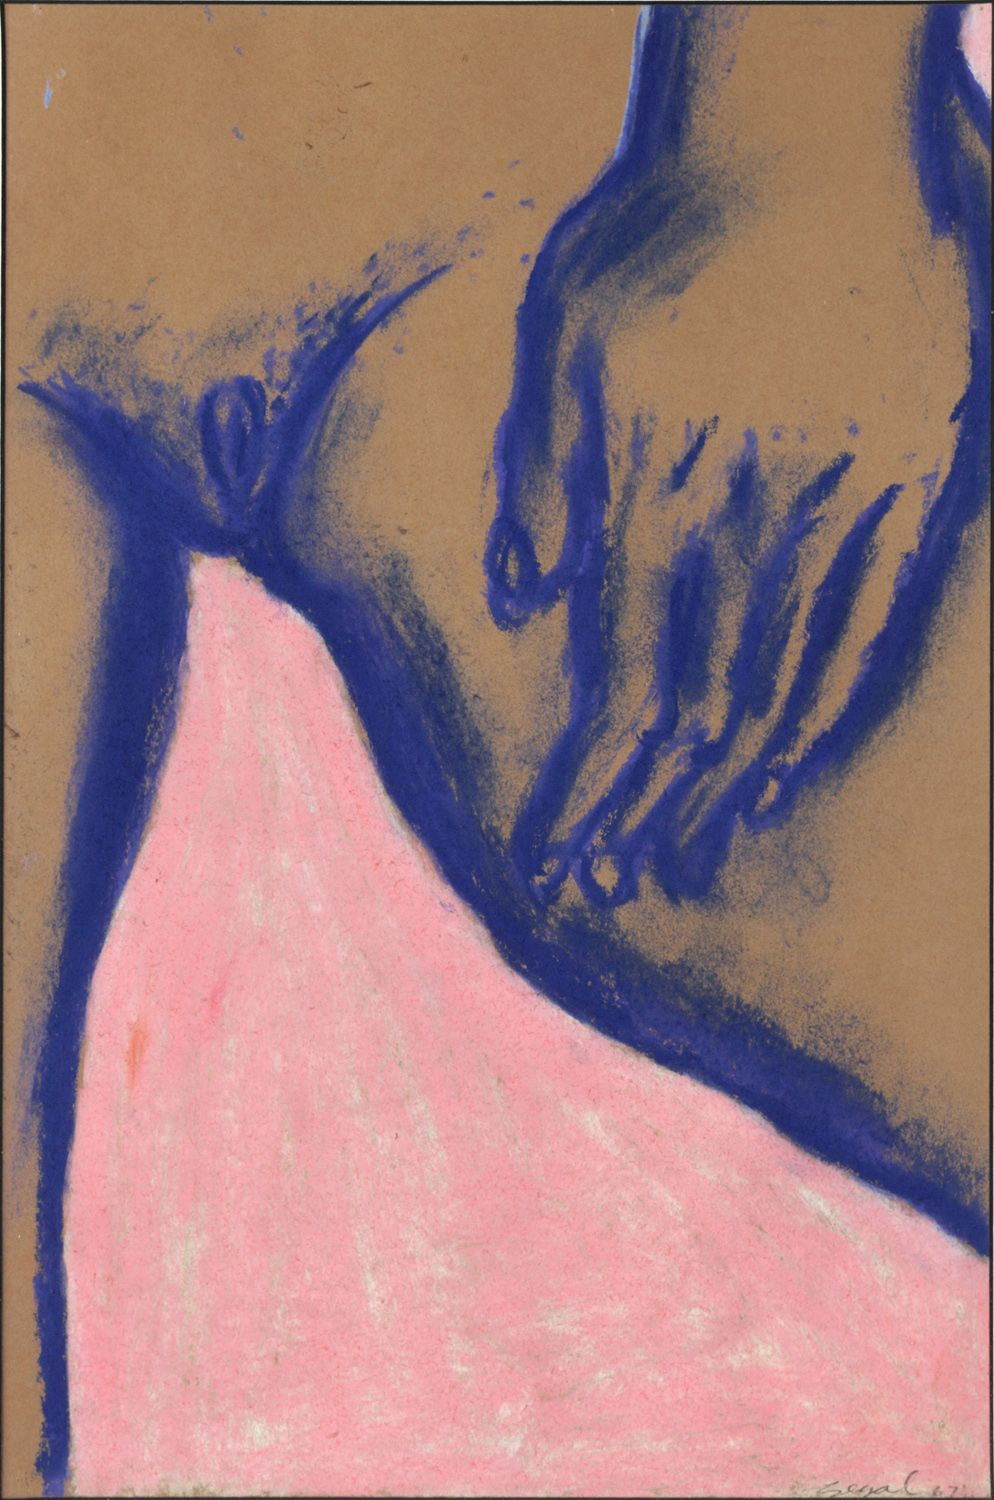 George Segal, Untitled (Hand on Thigh), 1964    Pastel on paper 18 x 12 inches